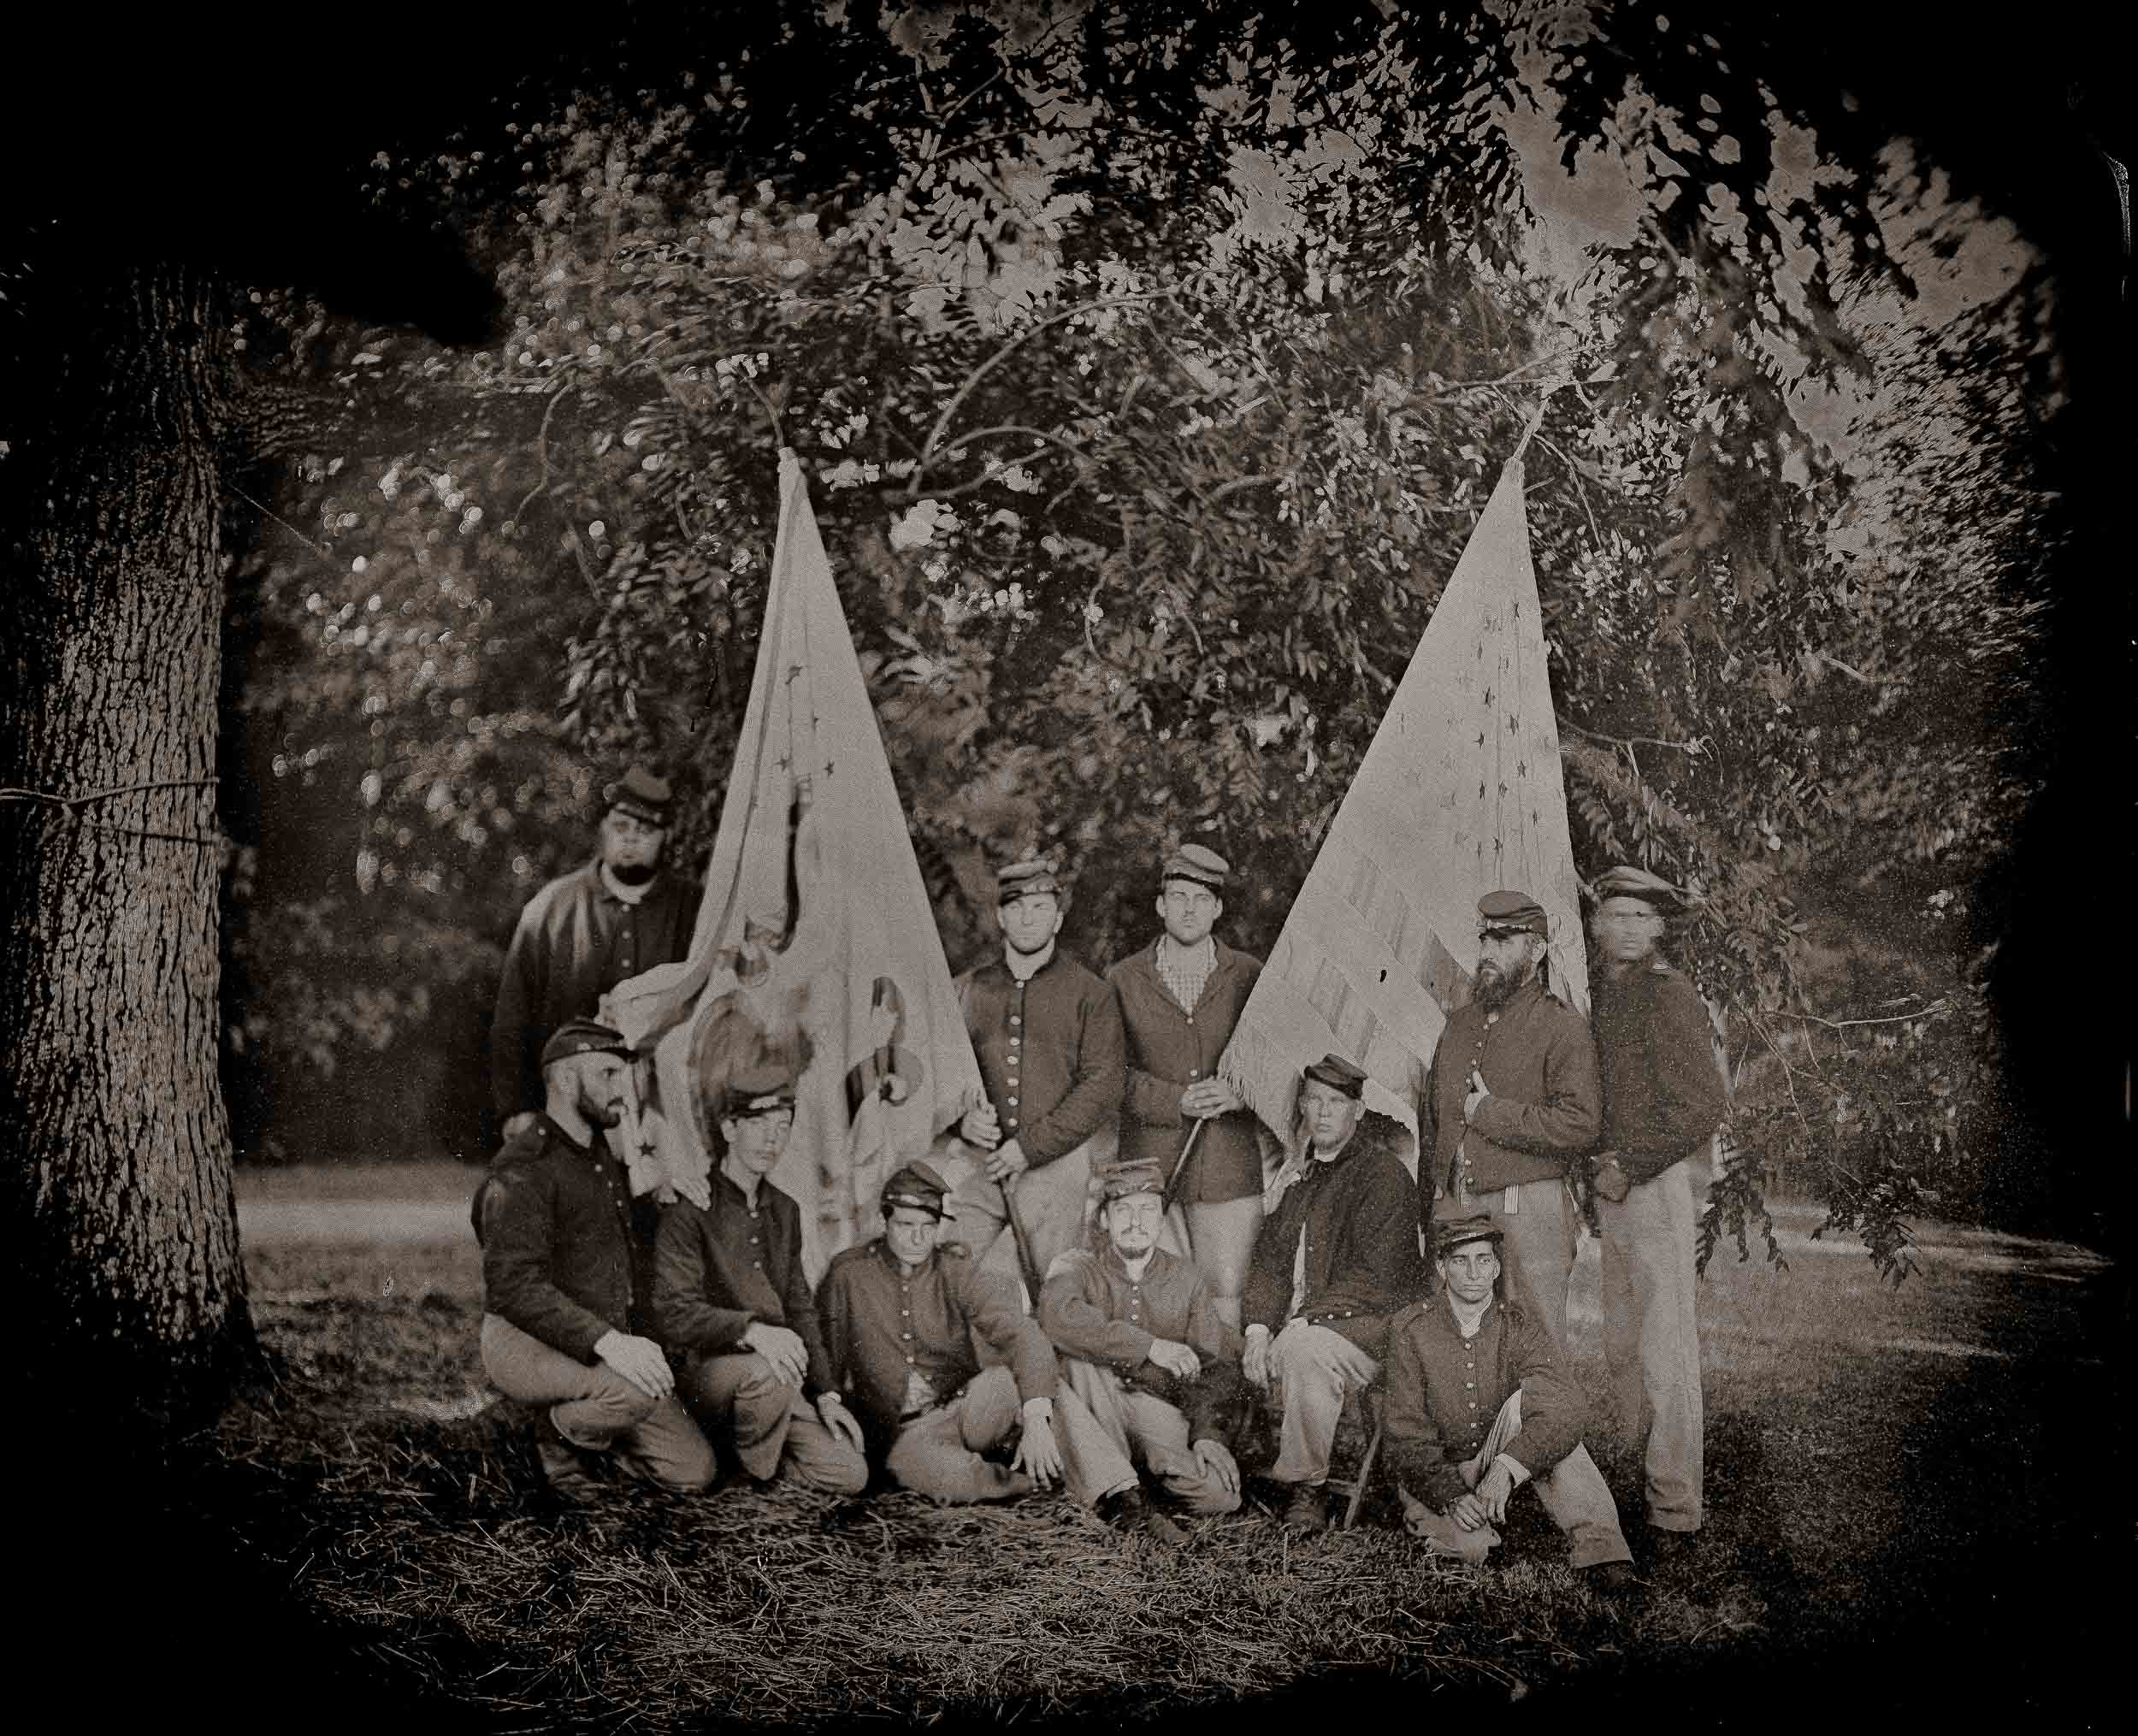 Patrick-Cavan-Brown-Tintype-Website-001-3